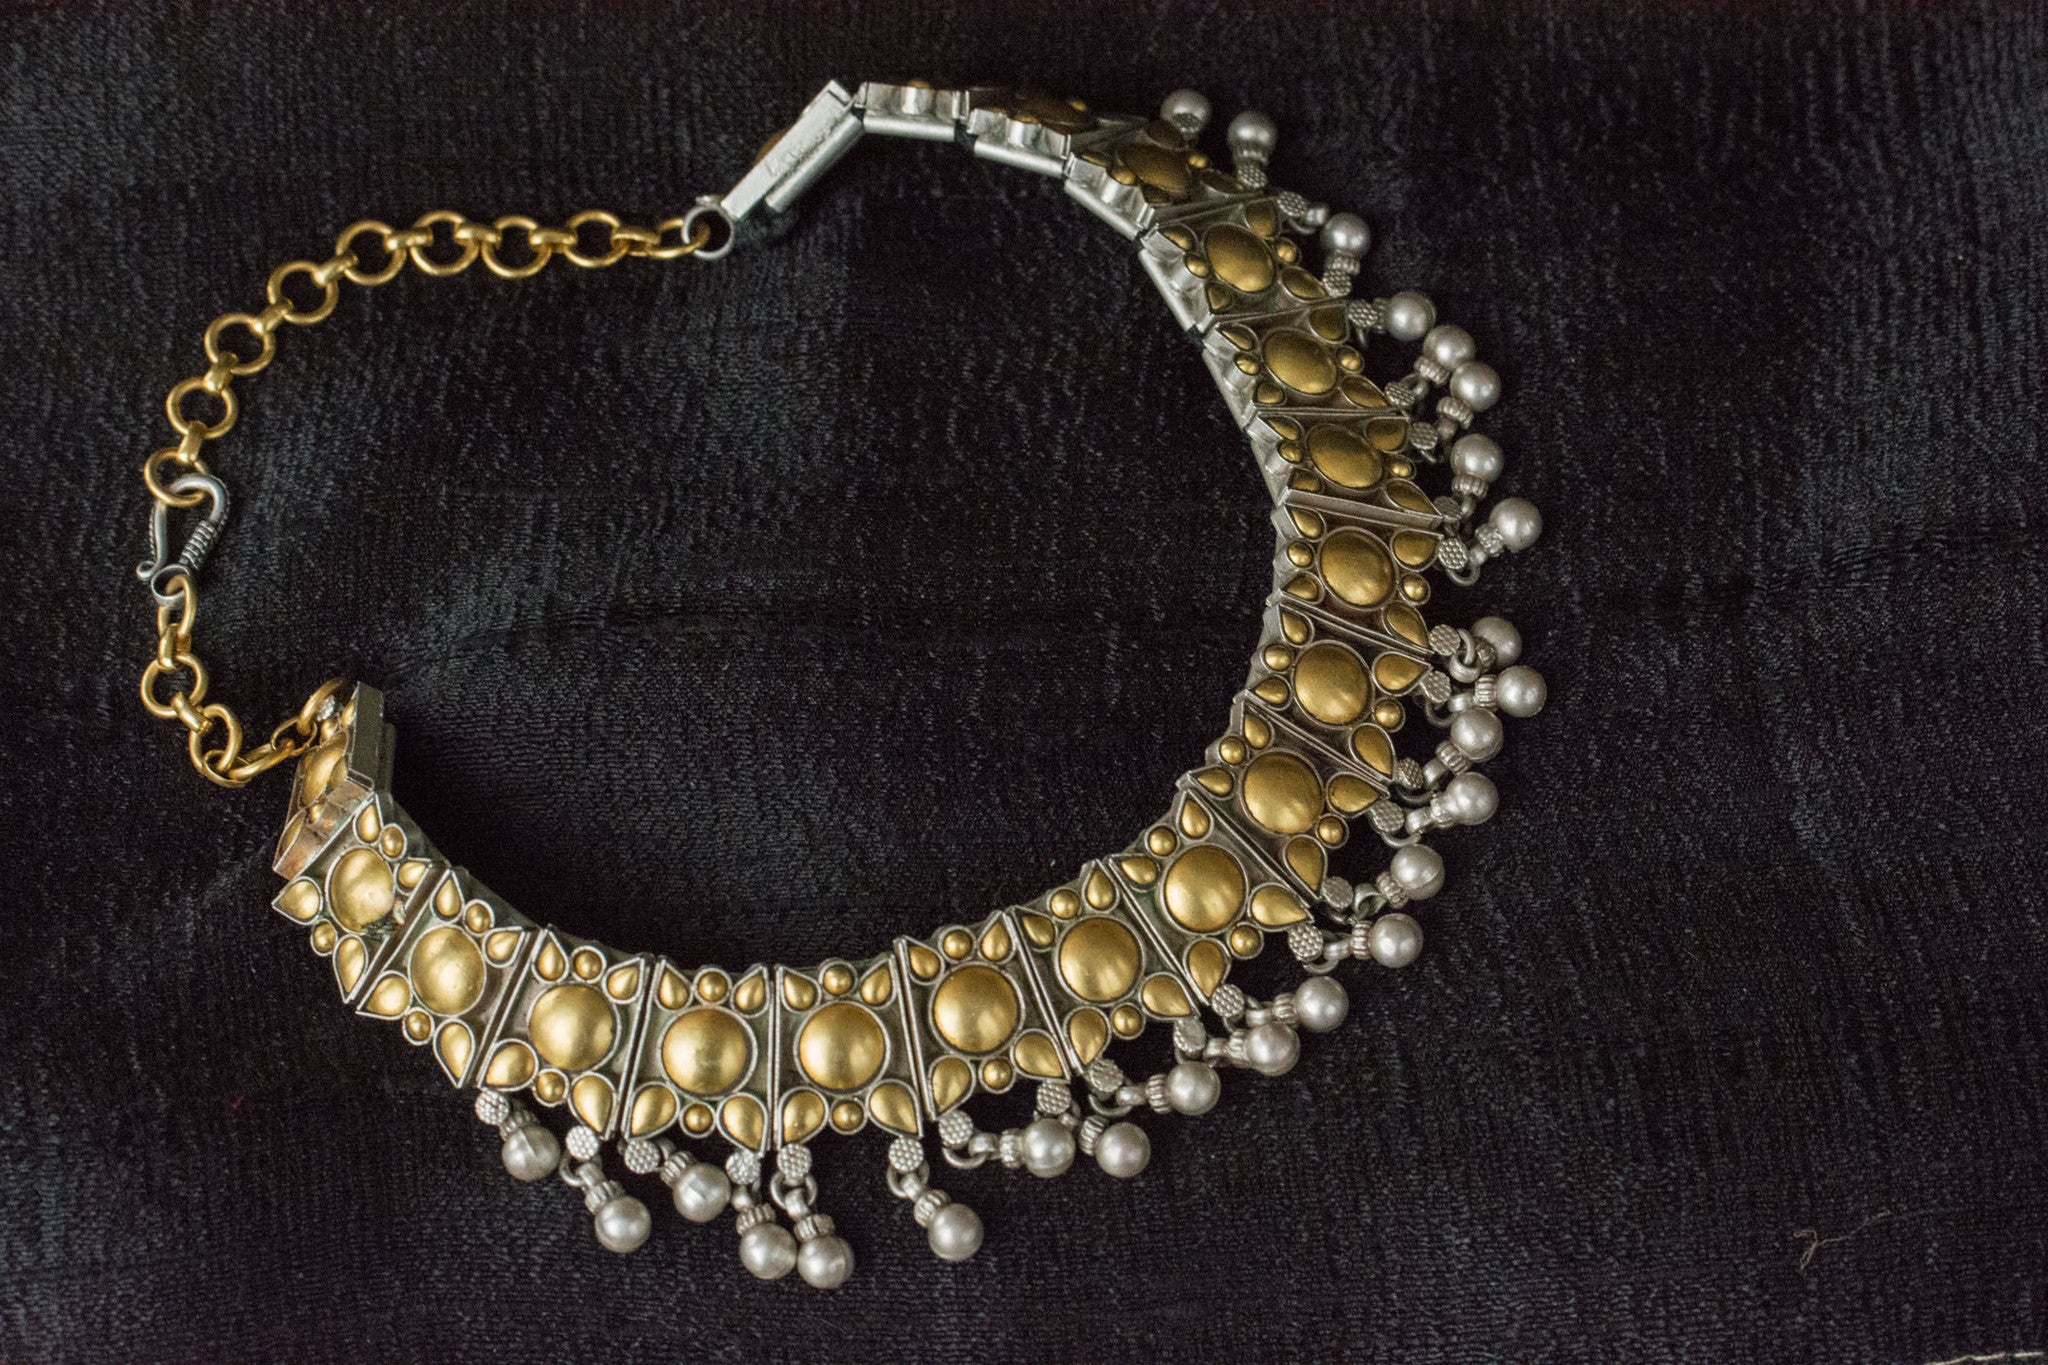 Indian Silver gold plated Amrapali Beaded fashion necklace. Traditional look neckpiece good in all events.-full view